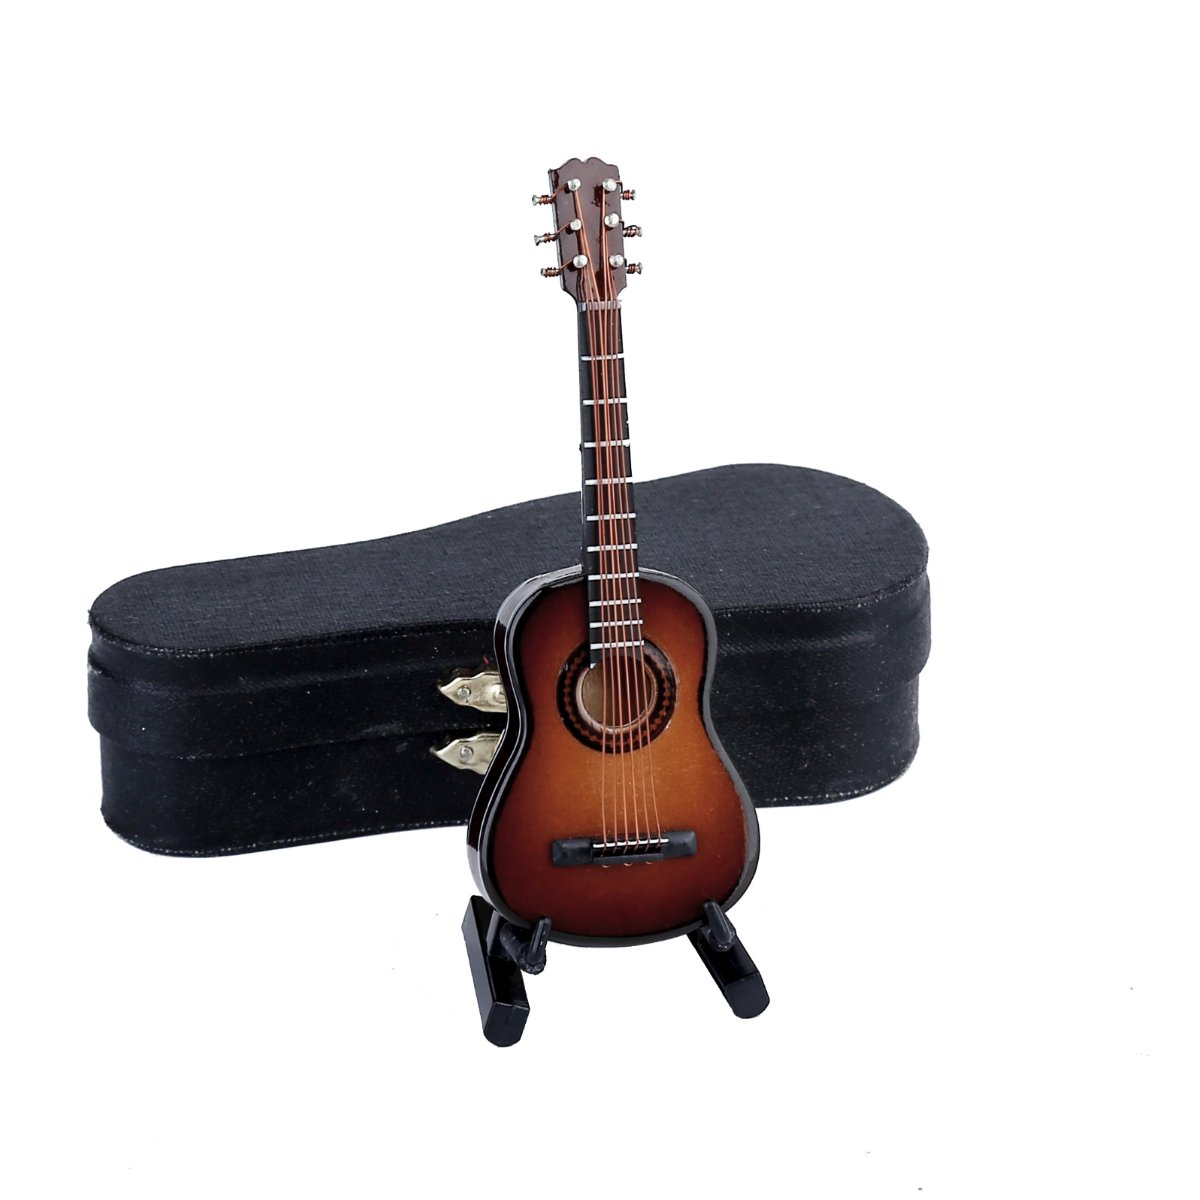 "Seawoo Wooden Miniature Guitar with Stand and Case Mini Musical Instrument Replica Collectible Miniature Dollhouse Model Home decoration (Classic Guitar:Brown, 3.93""x1.42""x0.56"")"